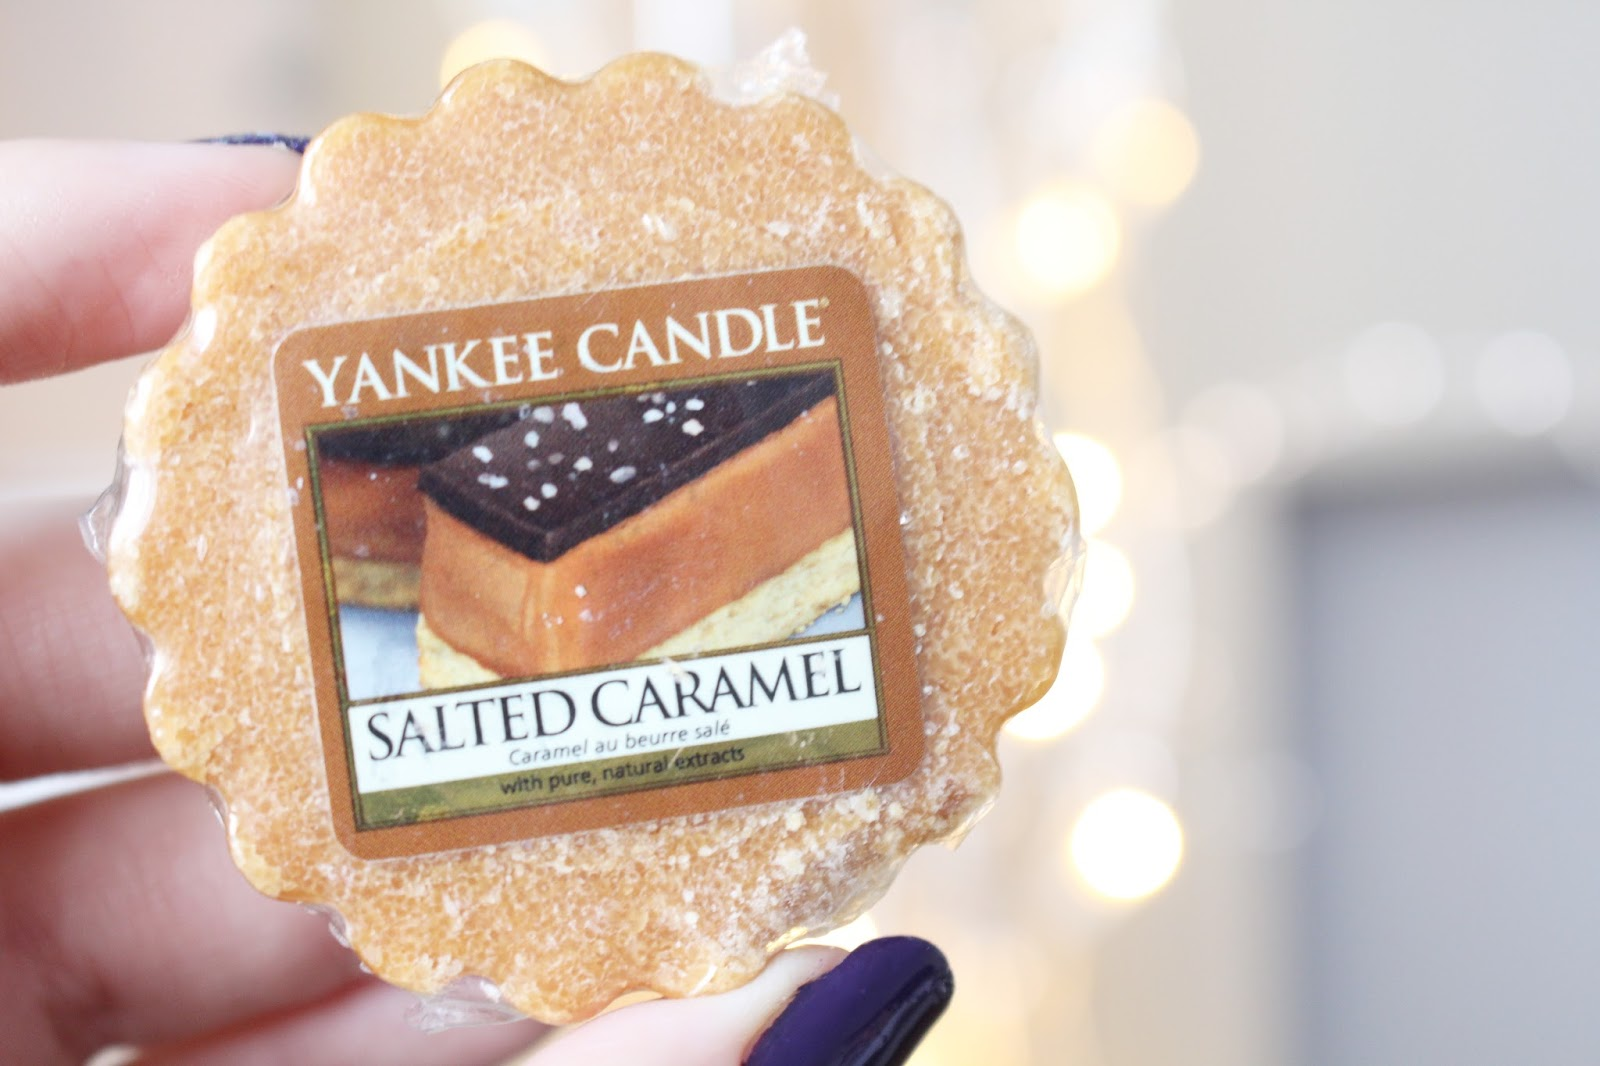 Yankee Candle Salted Caramel Review